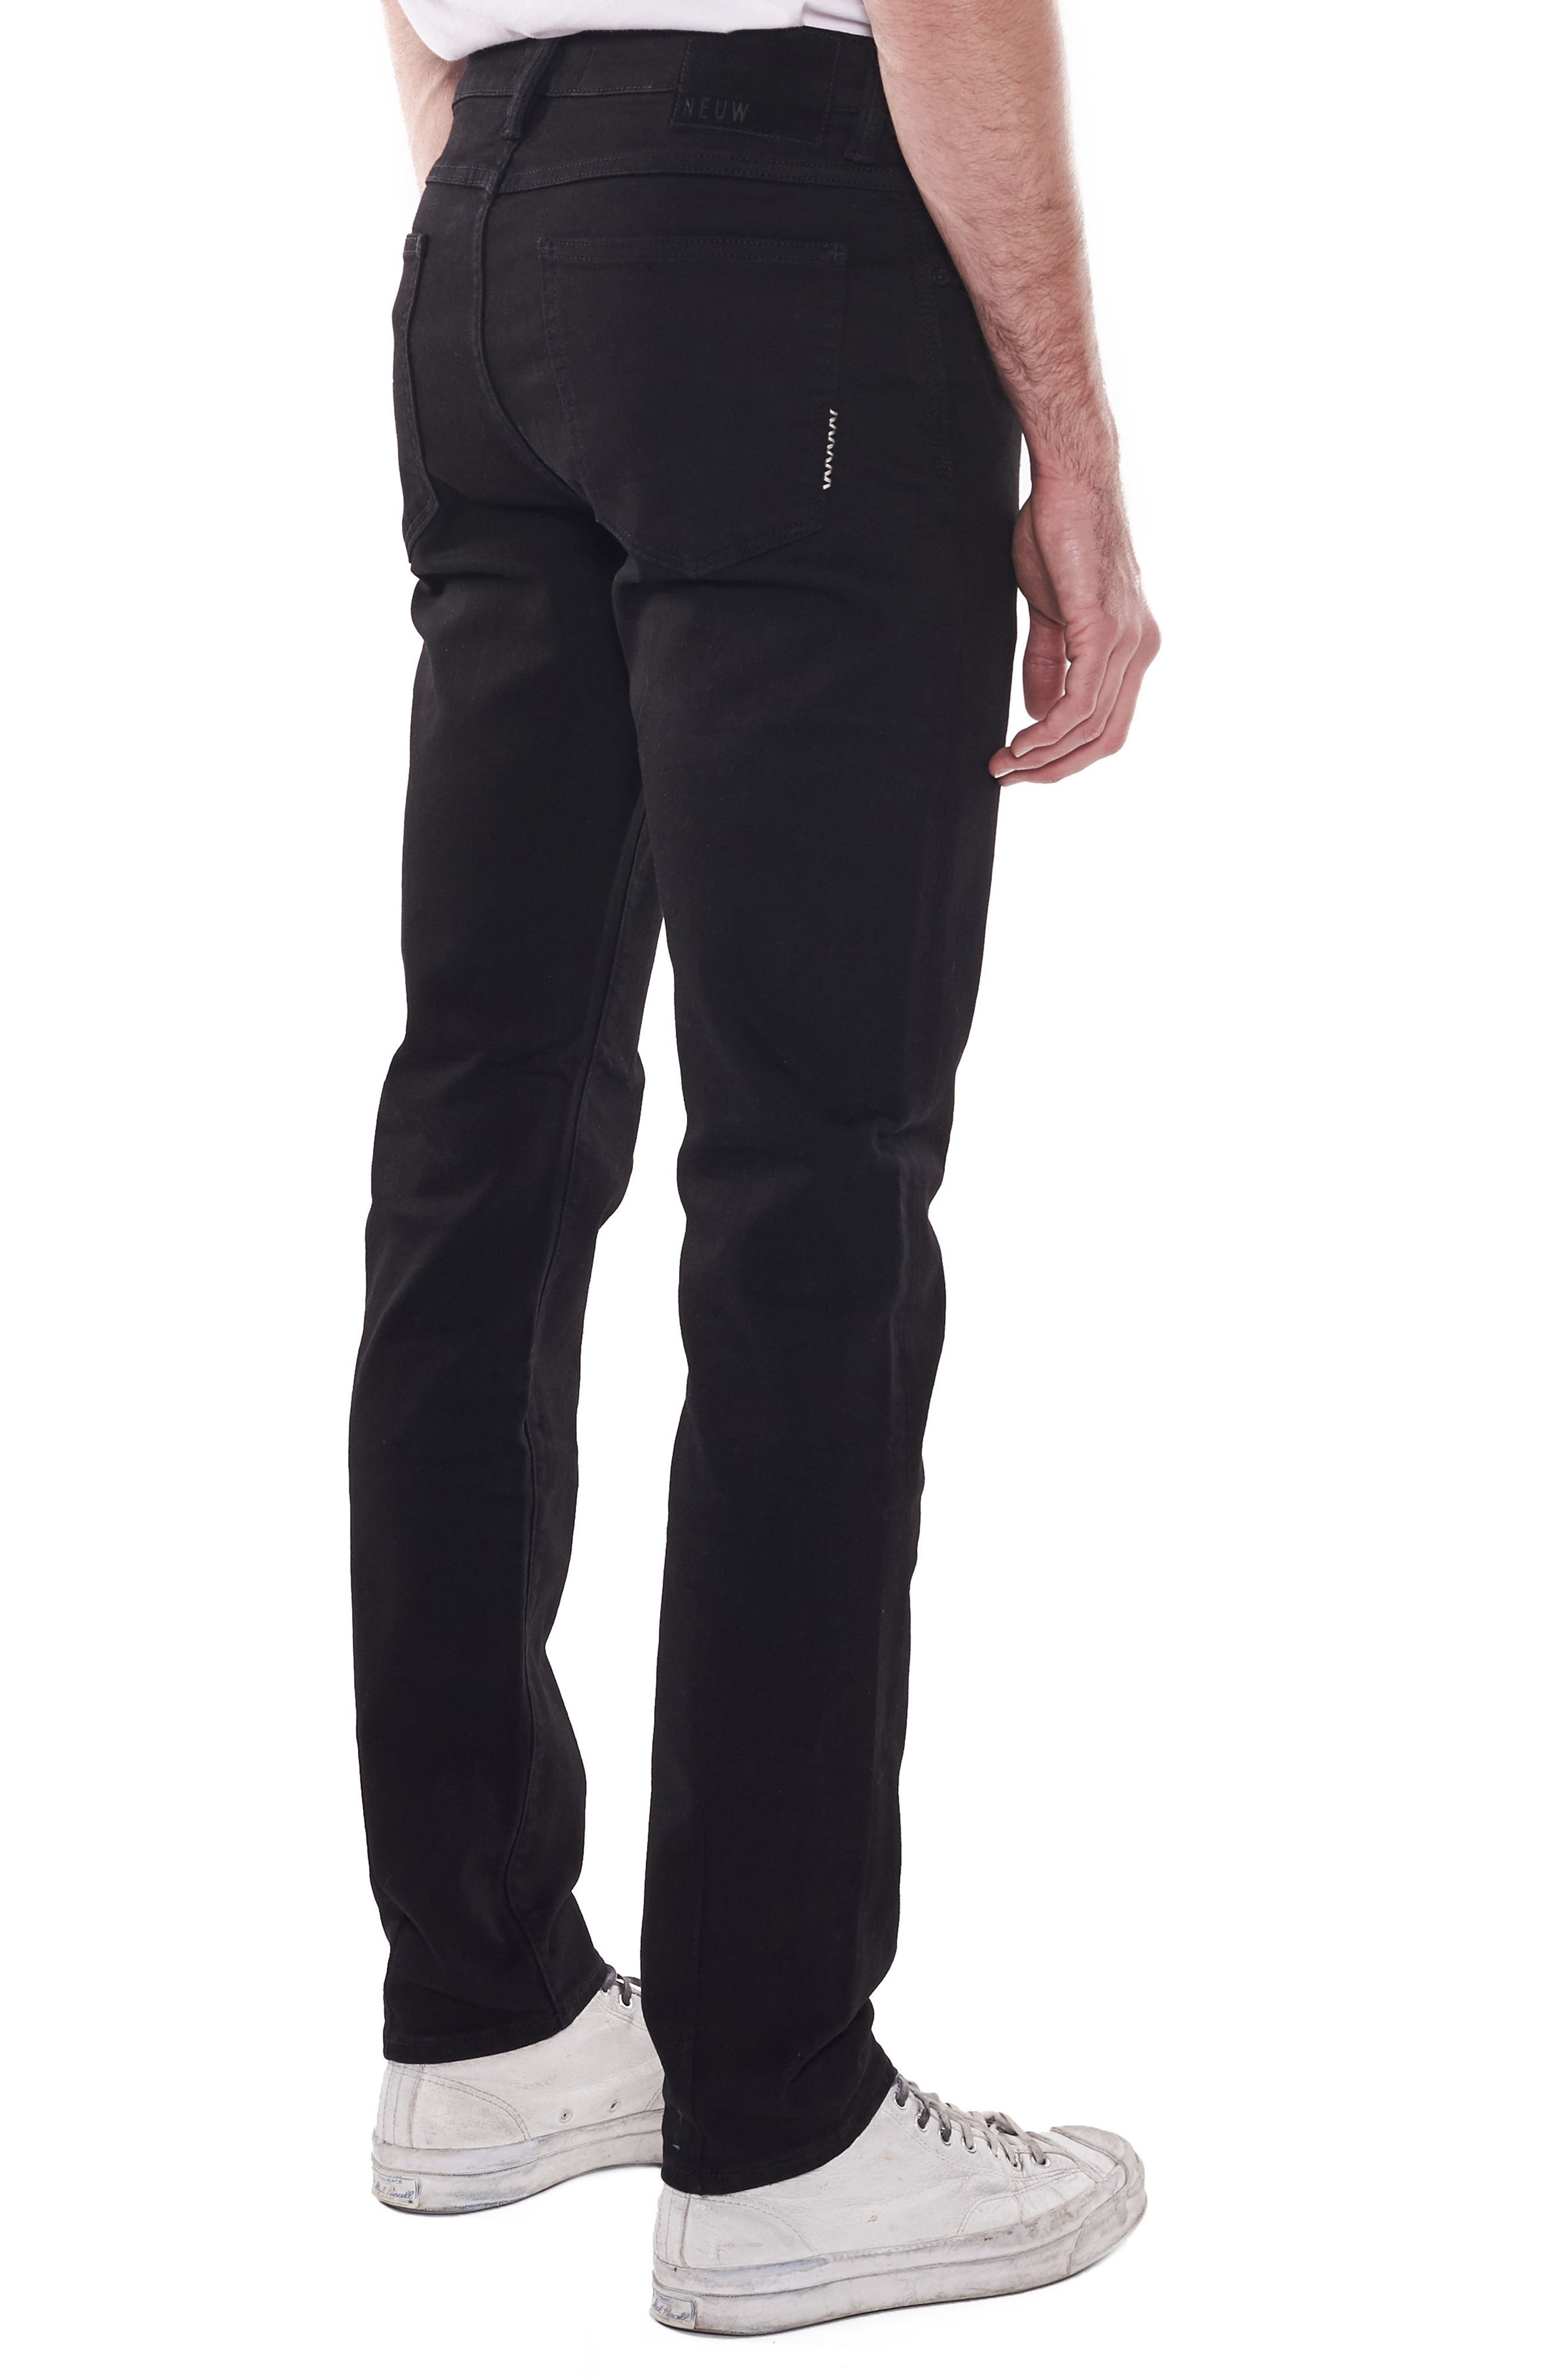 Iggy Skinny Fit Jeans,                             Alternate thumbnail 2, color,                             PERFECTO